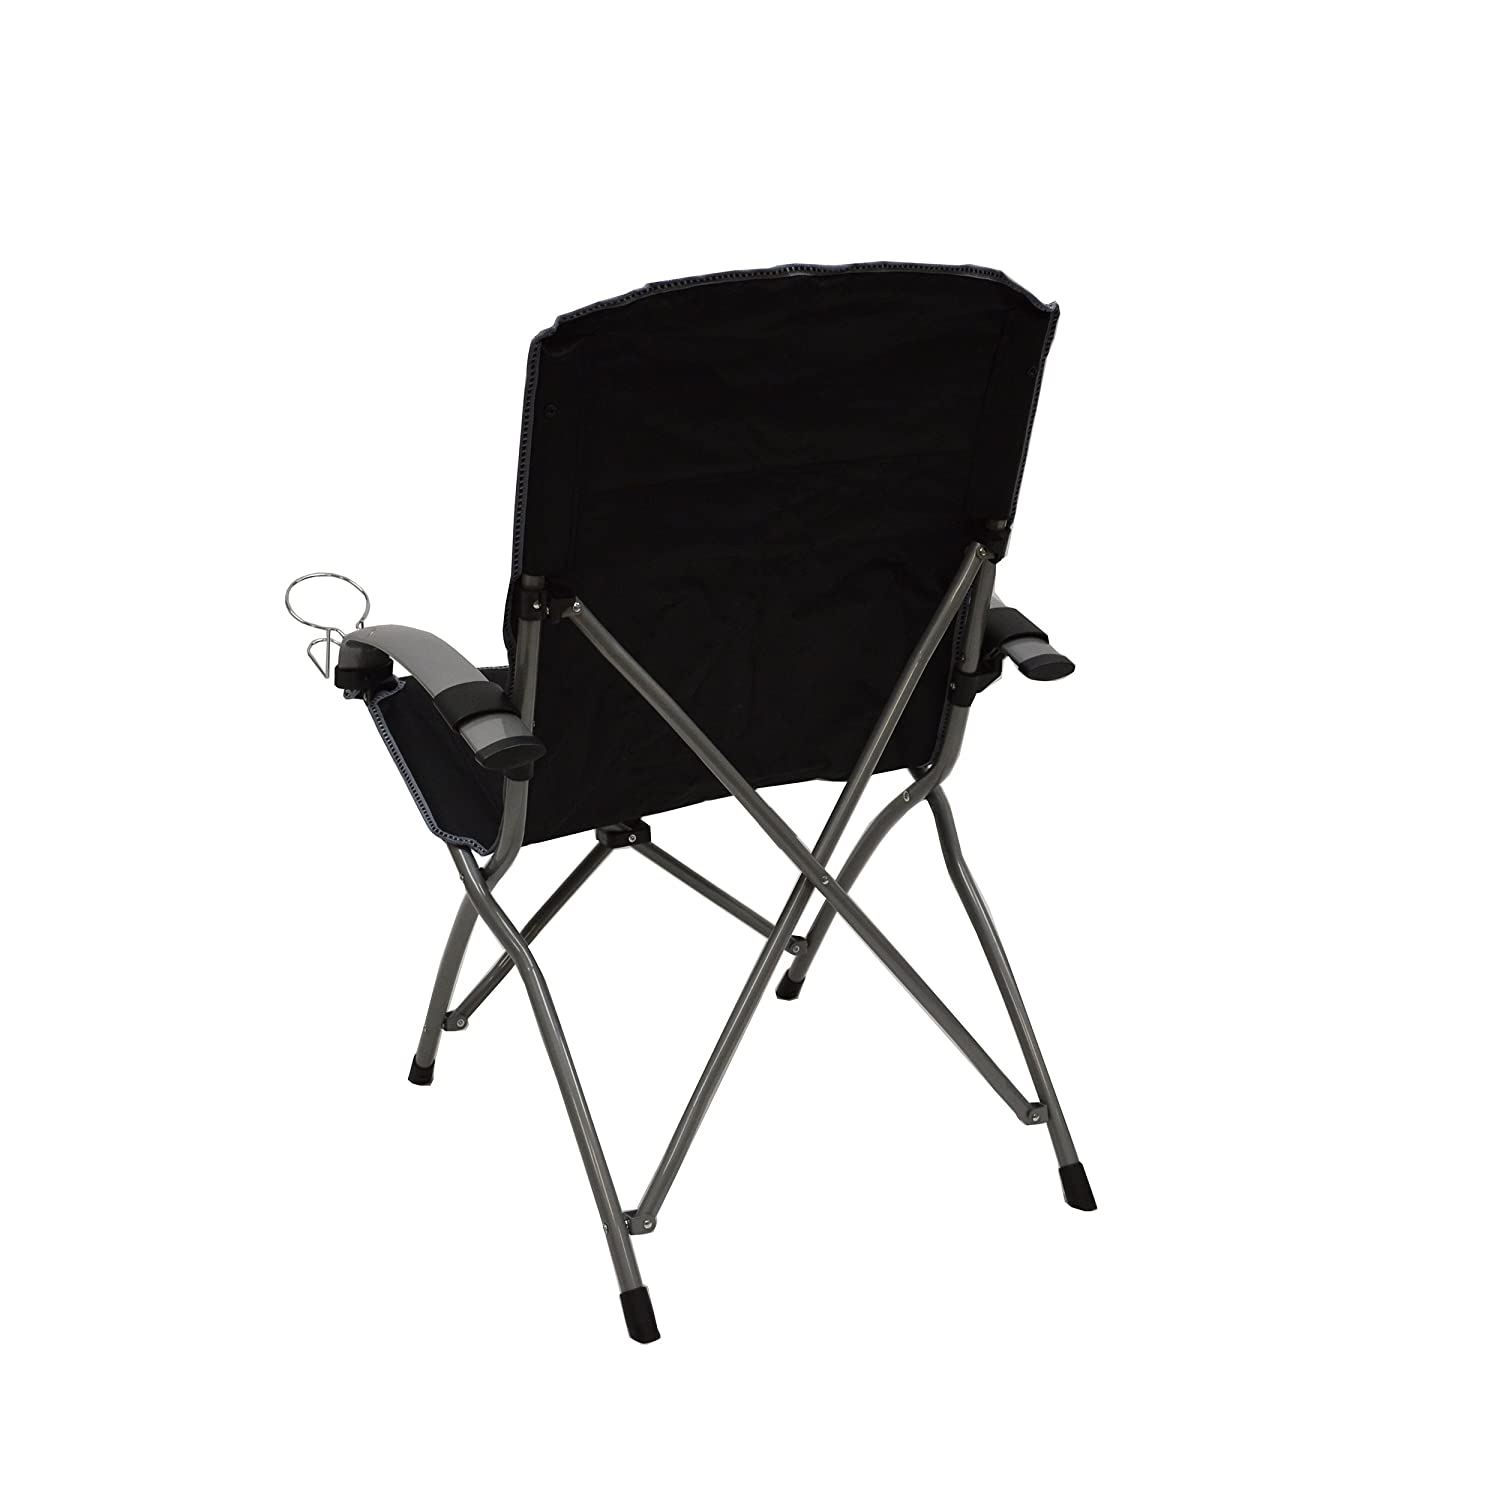 Amazon The mander Folding Armchair Black Garden & Outdoor